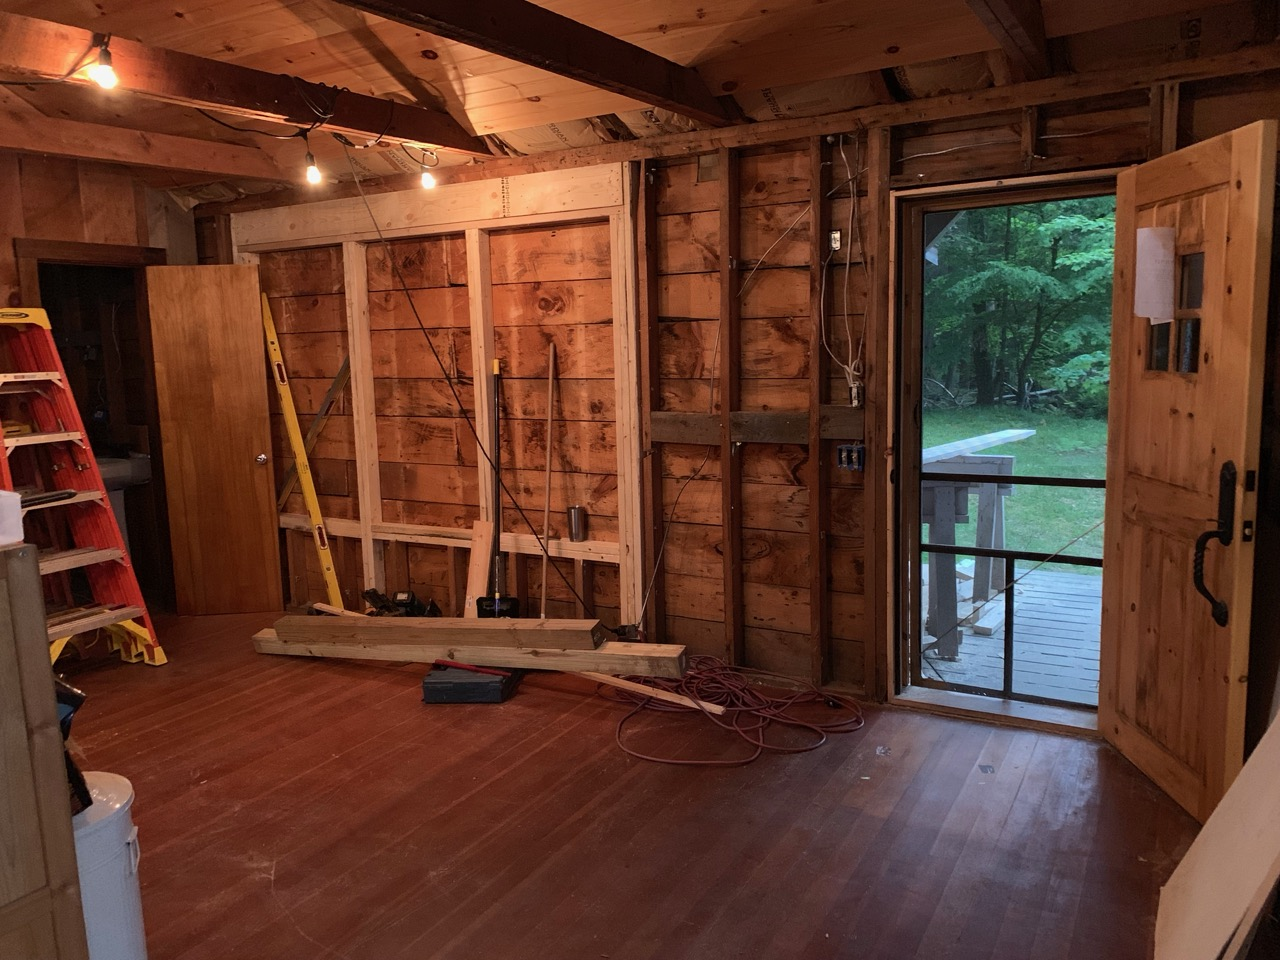 The wall with the bookcases will have windows as shown.